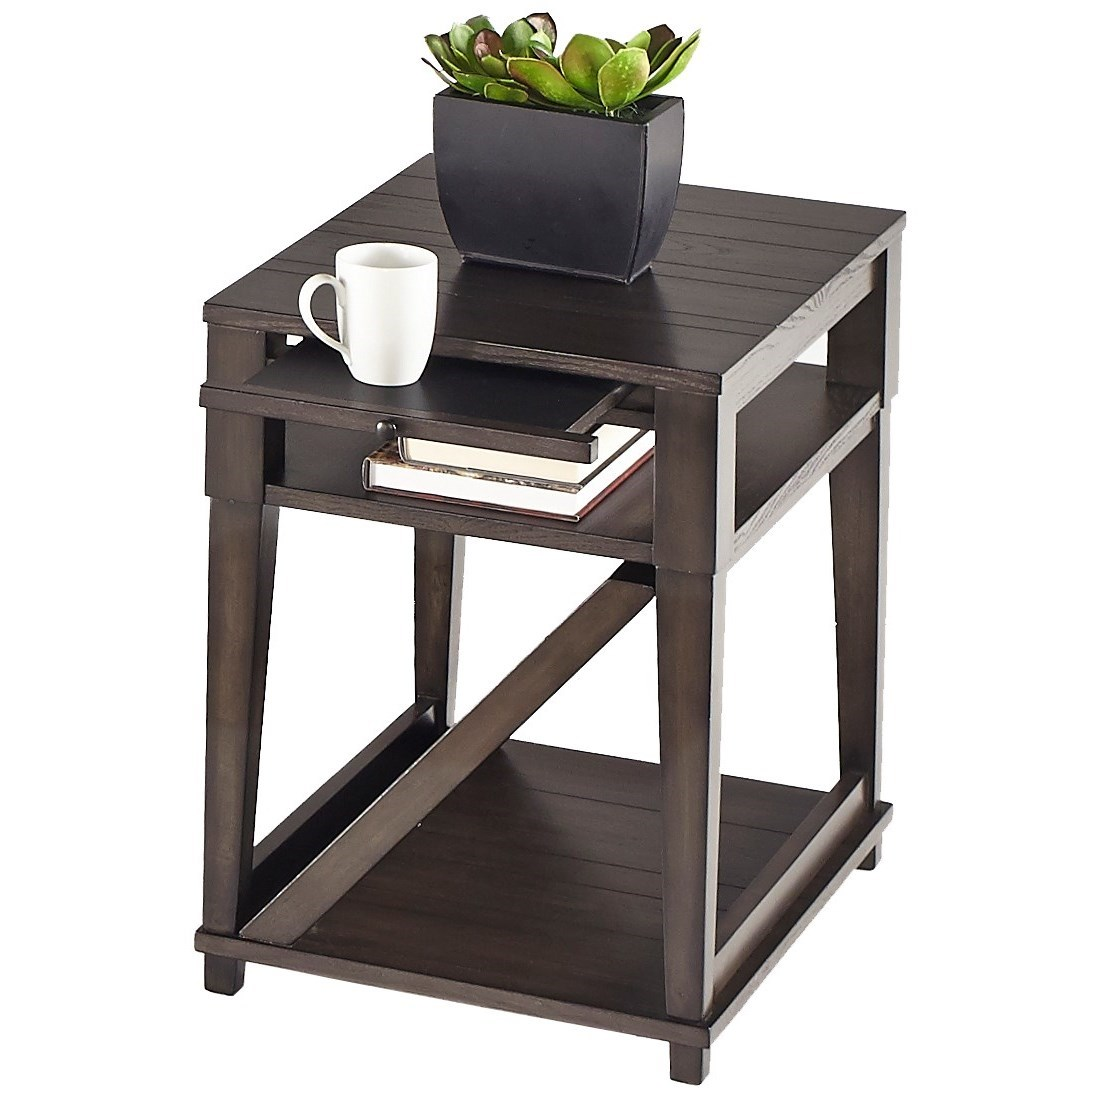 Consort Chairside Table by Progressive Furniture at Darvin Furniture